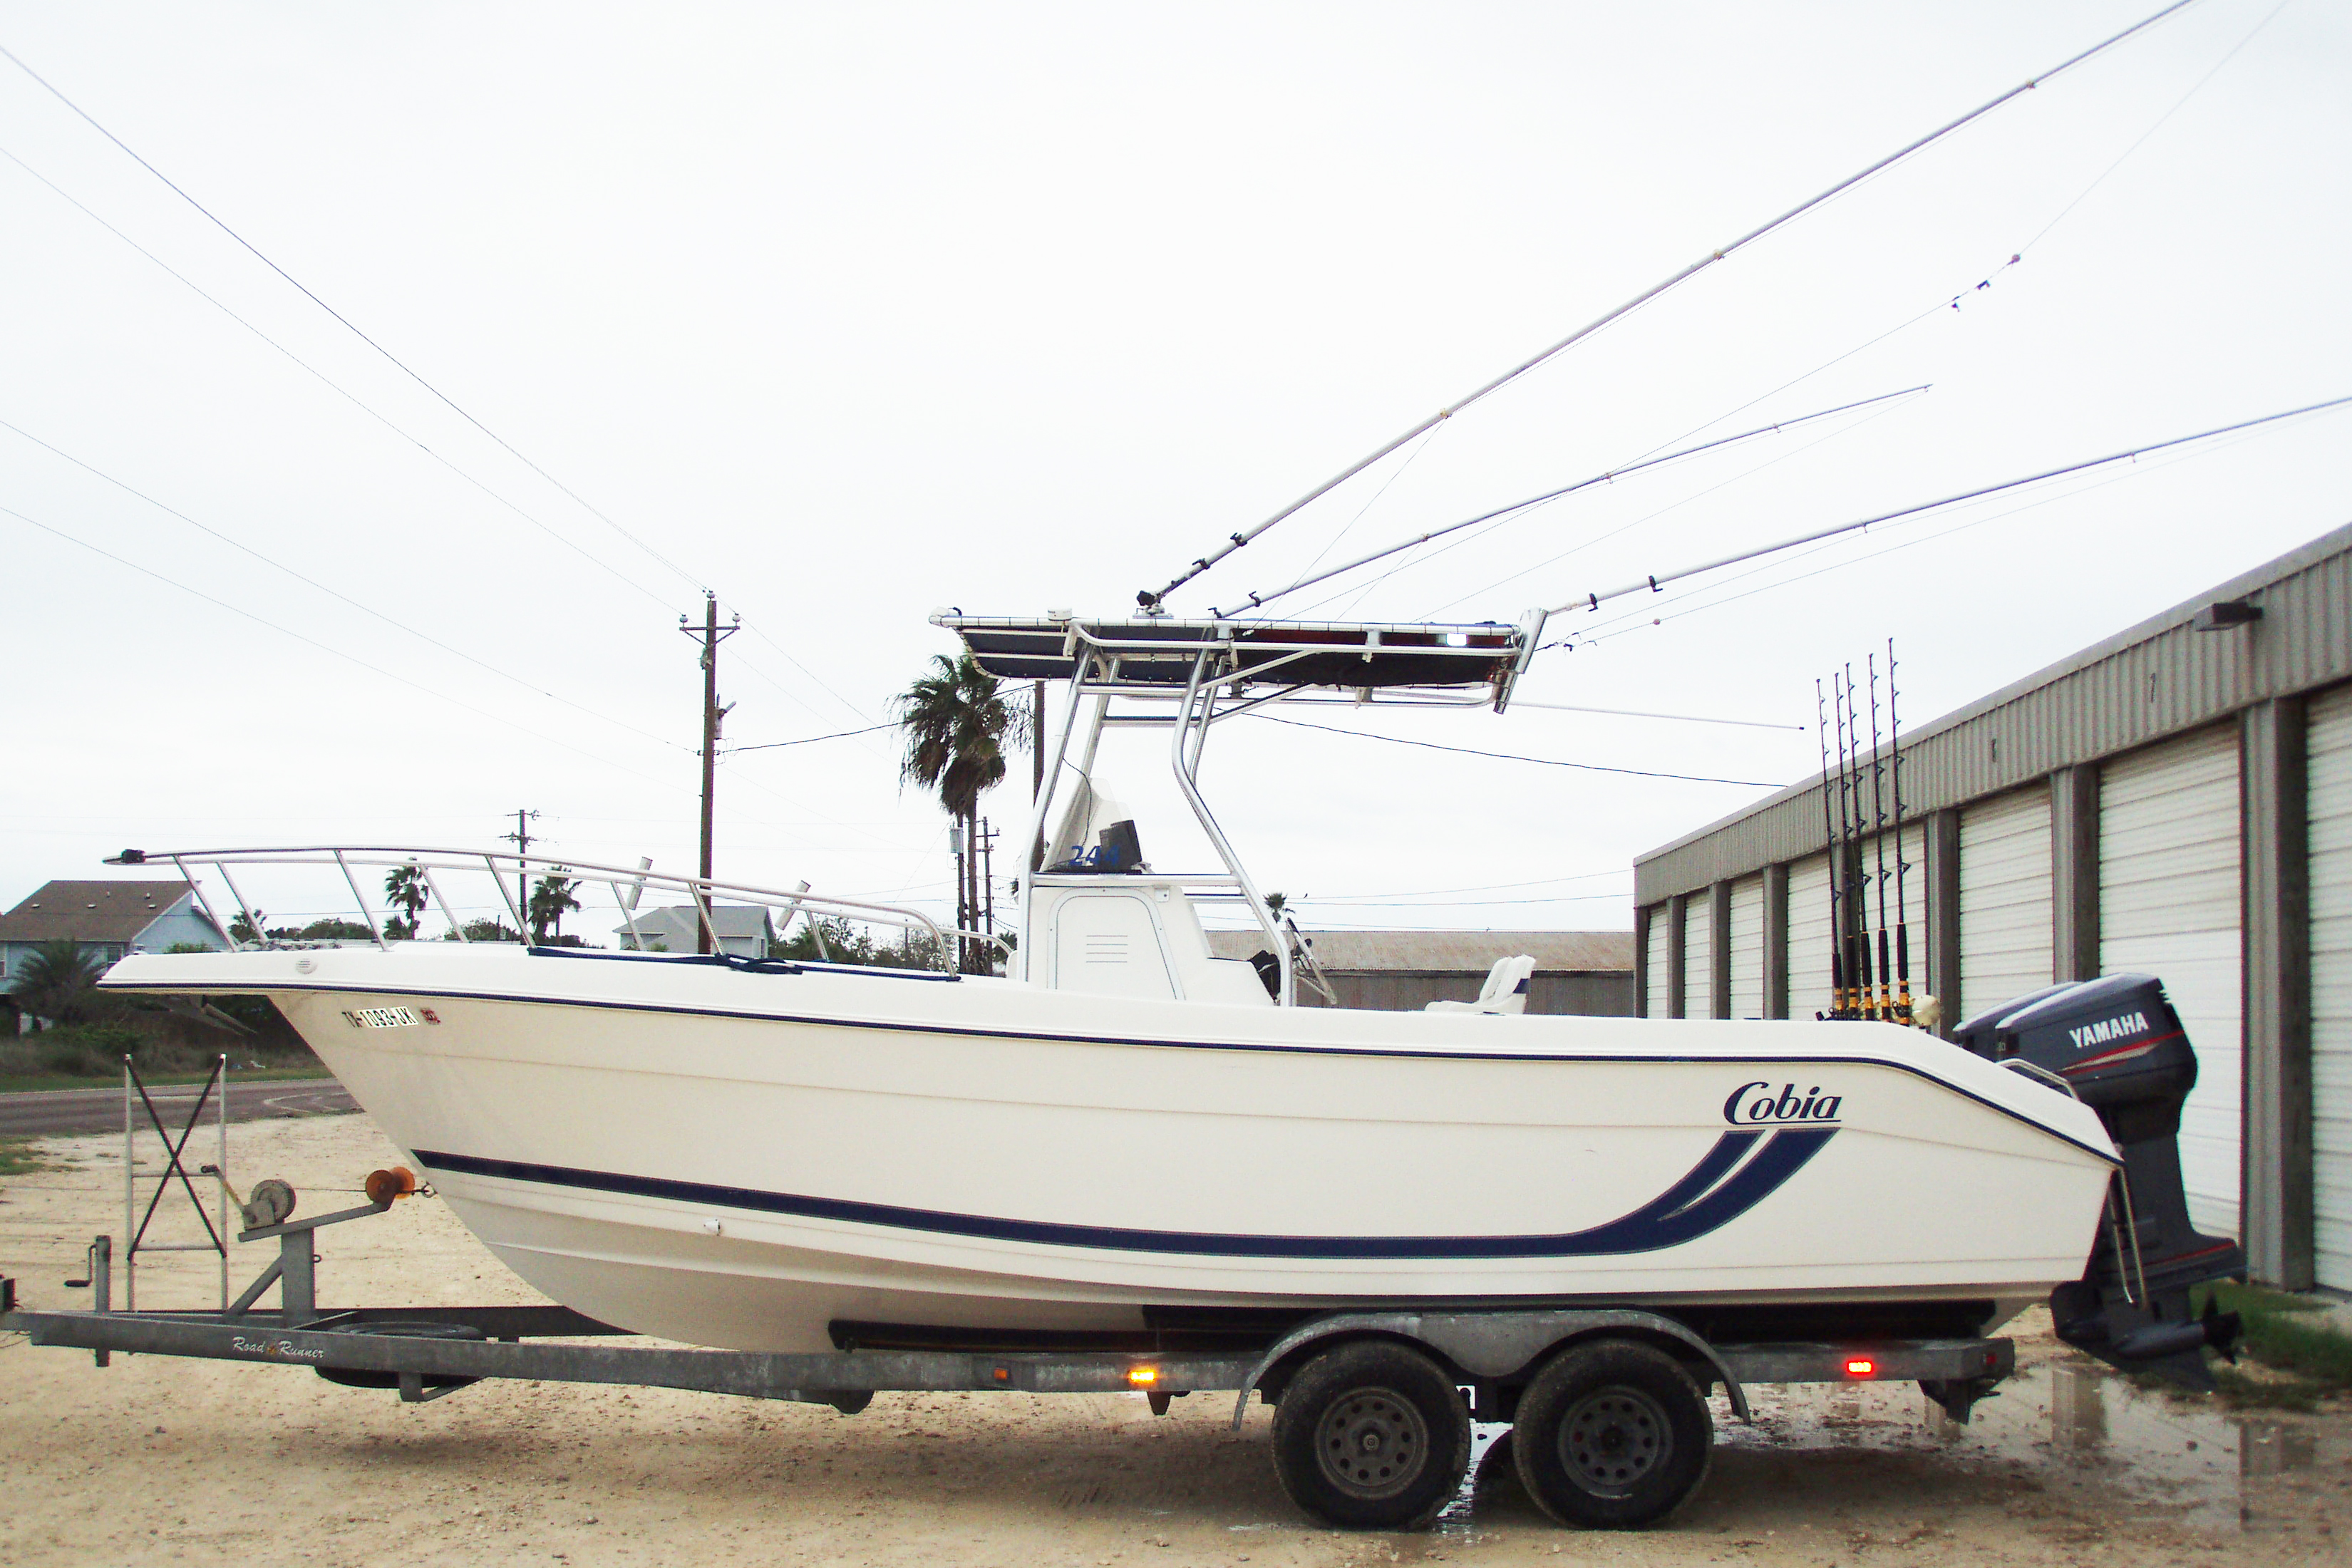 Port aransas fishing and rockport texas fishing guide bay for Fishing boats for sale in texas